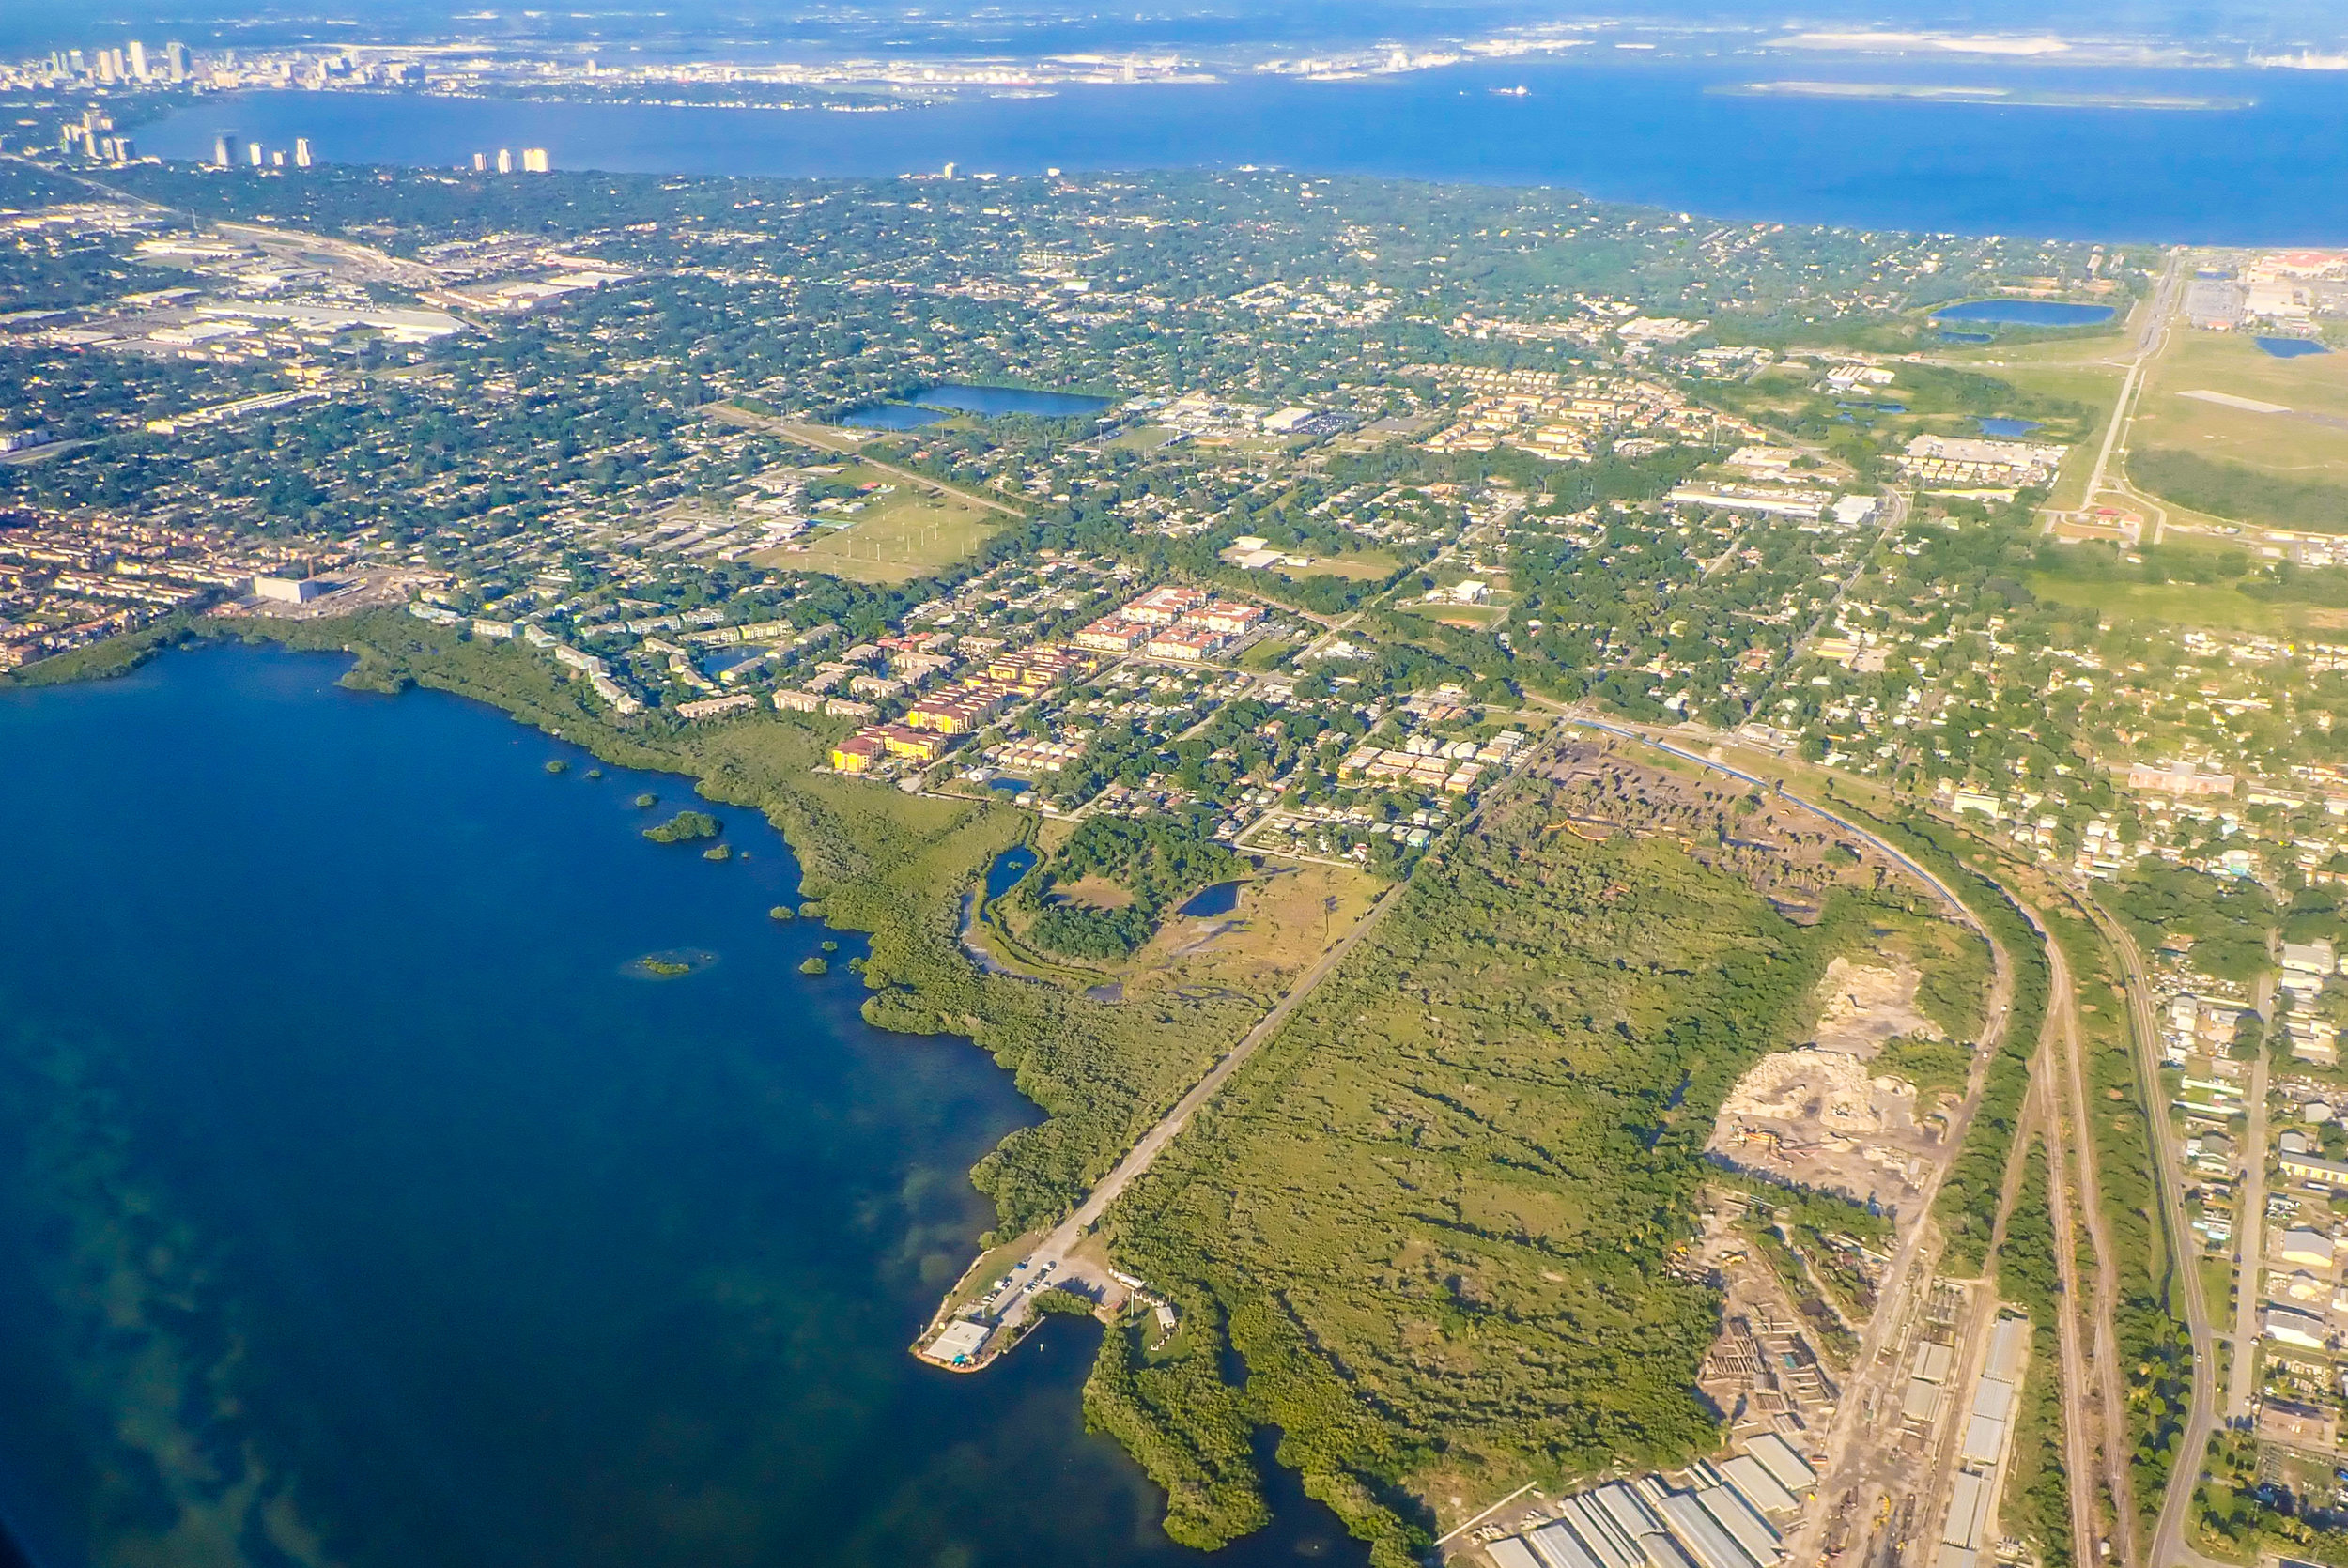 View from above of Tampa, Florida.